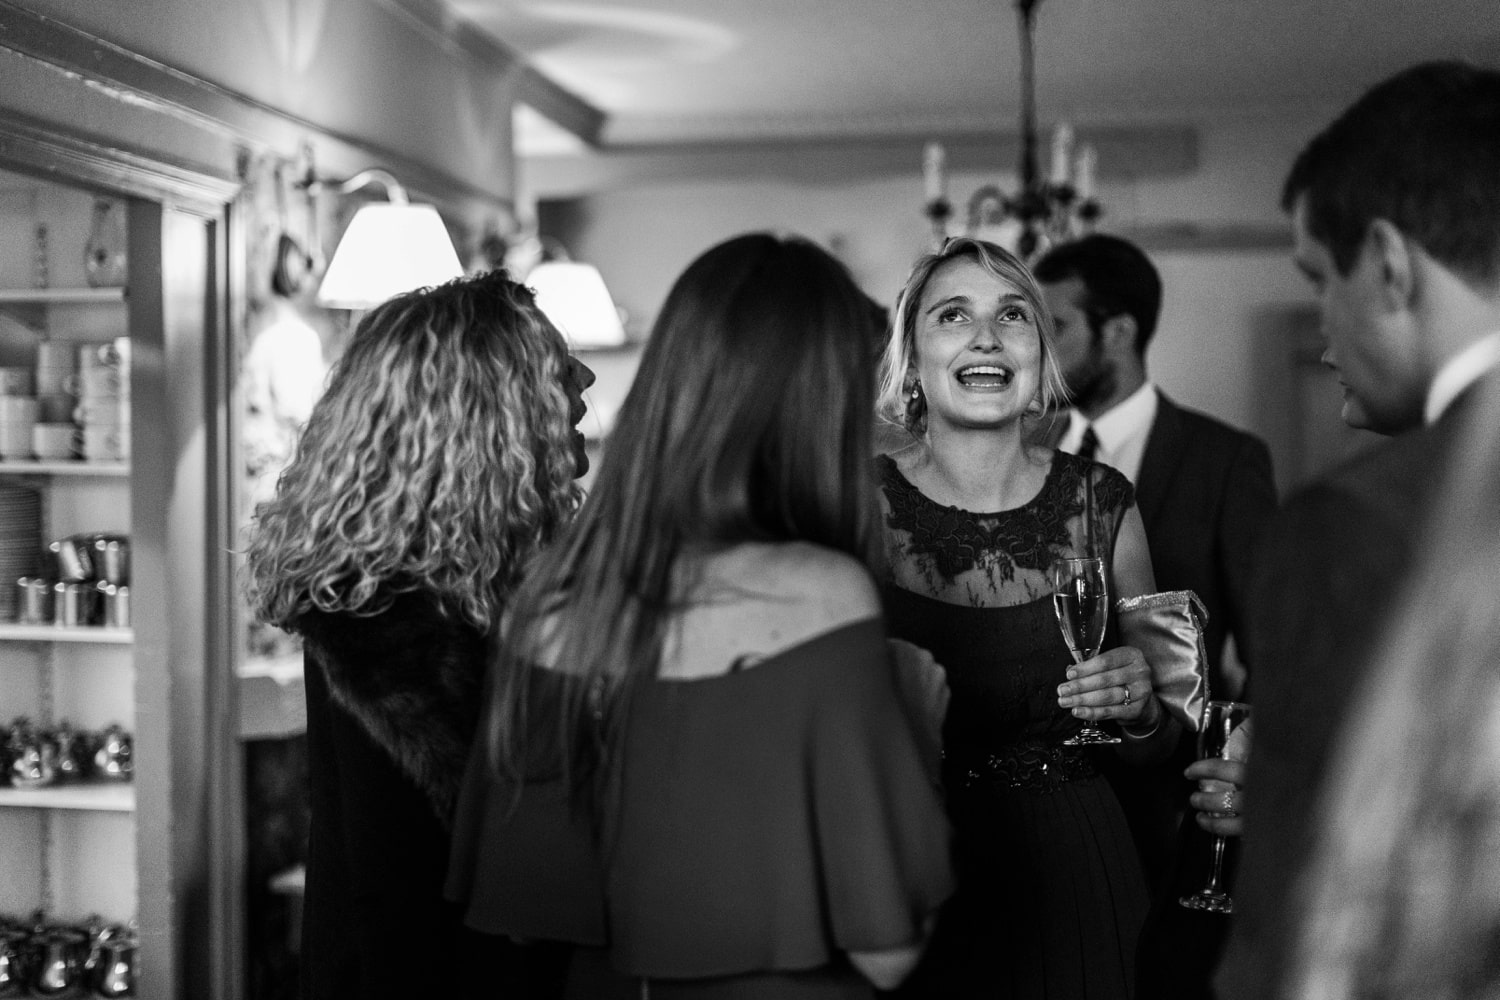 Winter wedding reception at King Arthur Hotel, Gower